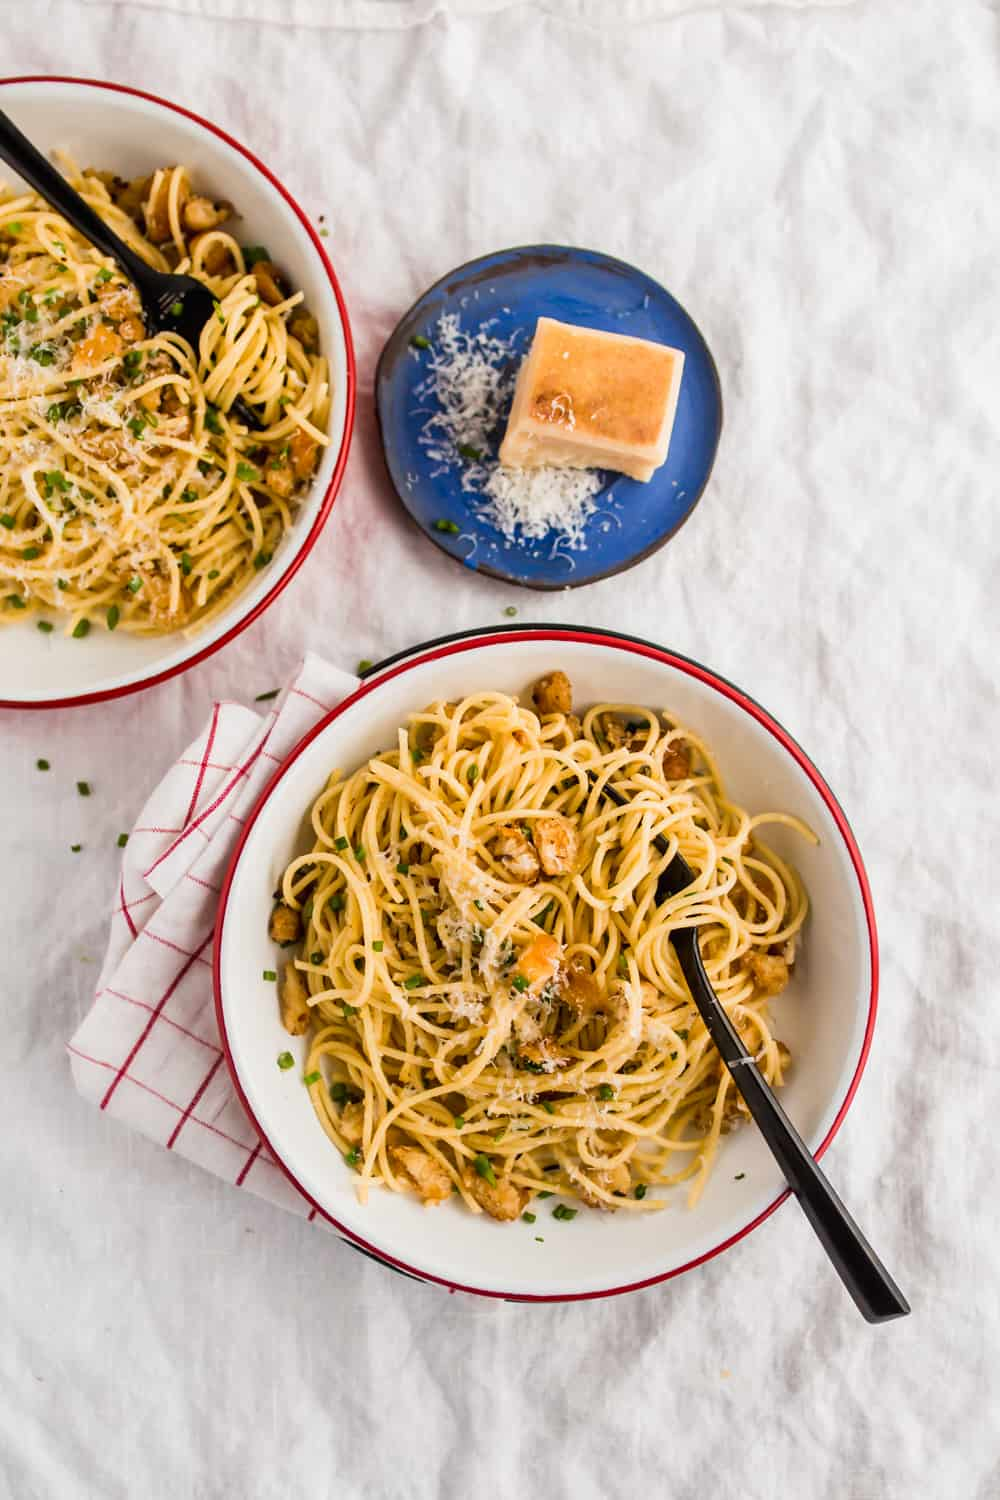 Two servings of Spaghetti with garlic herb breadcrumbs in white bowls and grated parmesan on the side.